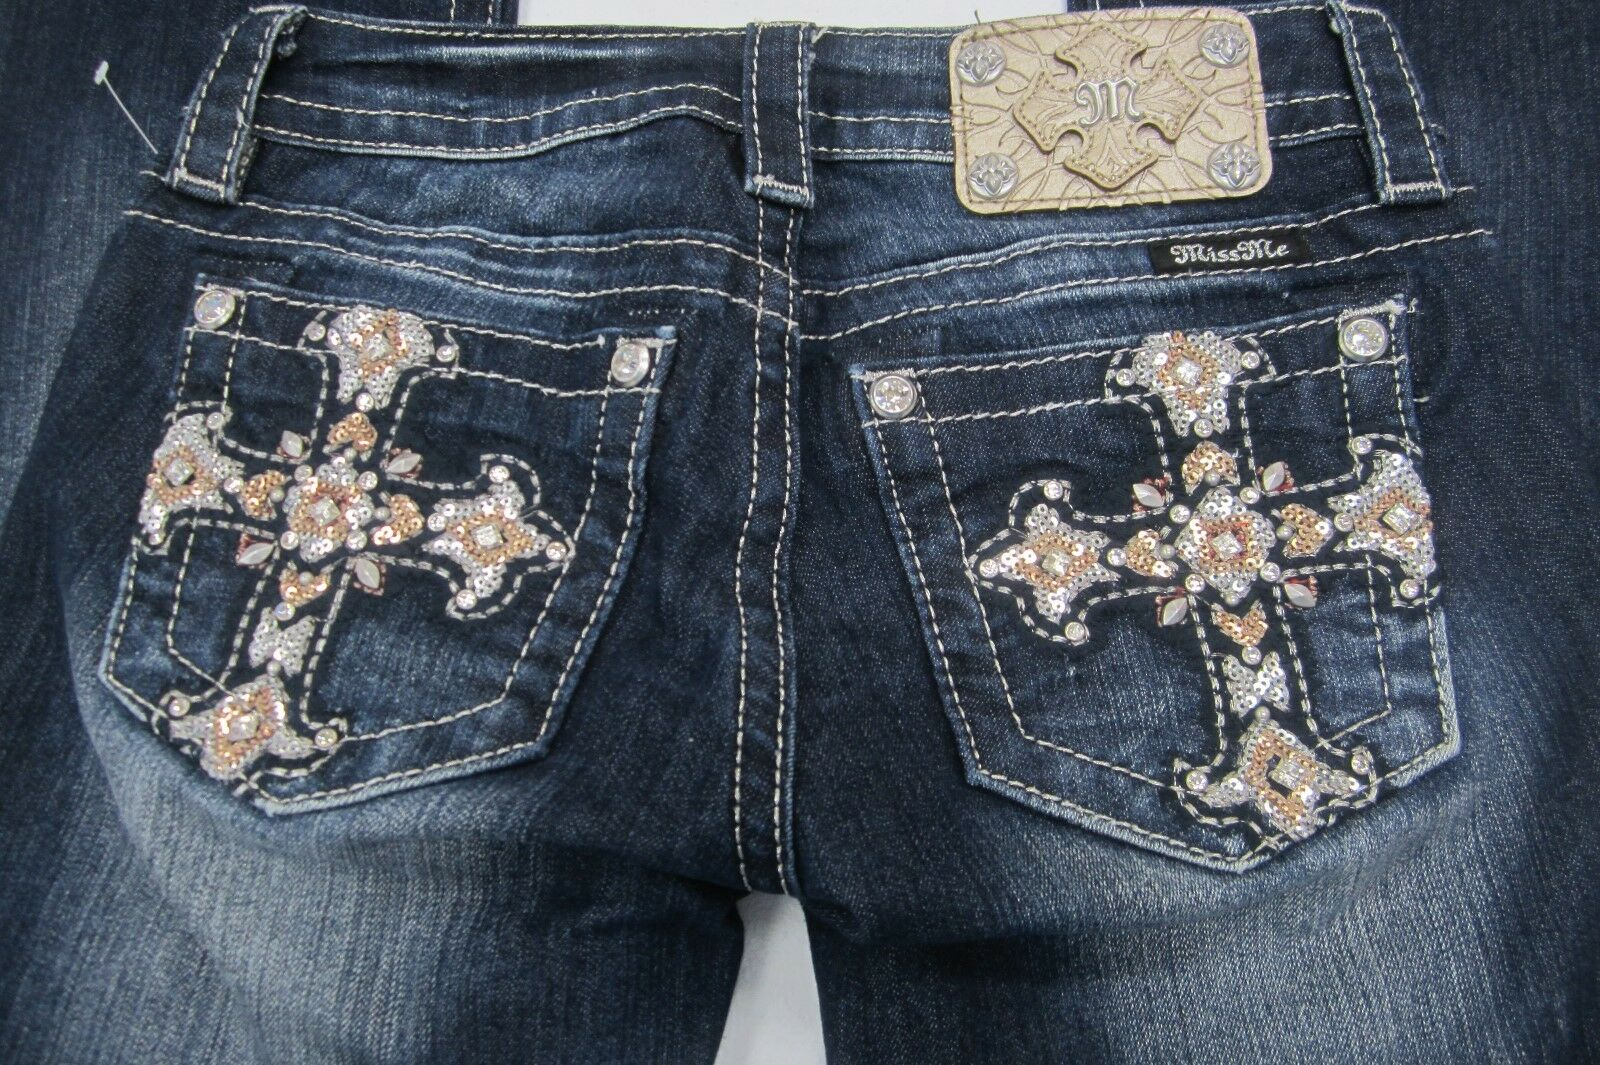 NWOT  Miss Me Sequin   Crystals  Cross Signature Boot Cut Jeans Size 24x30